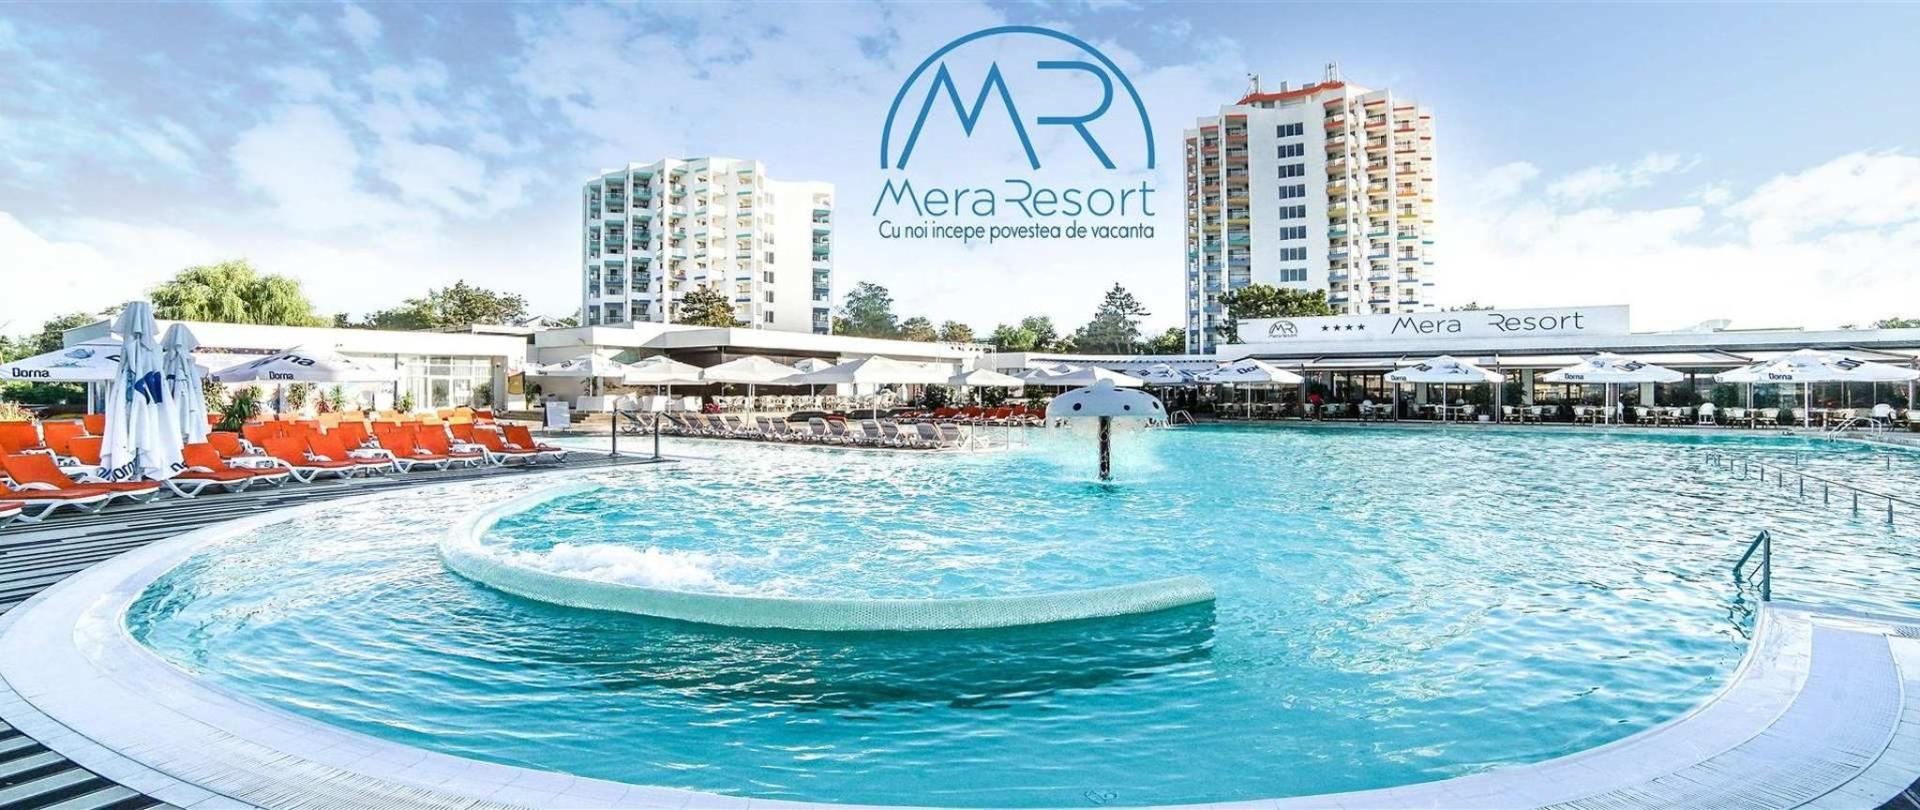 Mera Resort